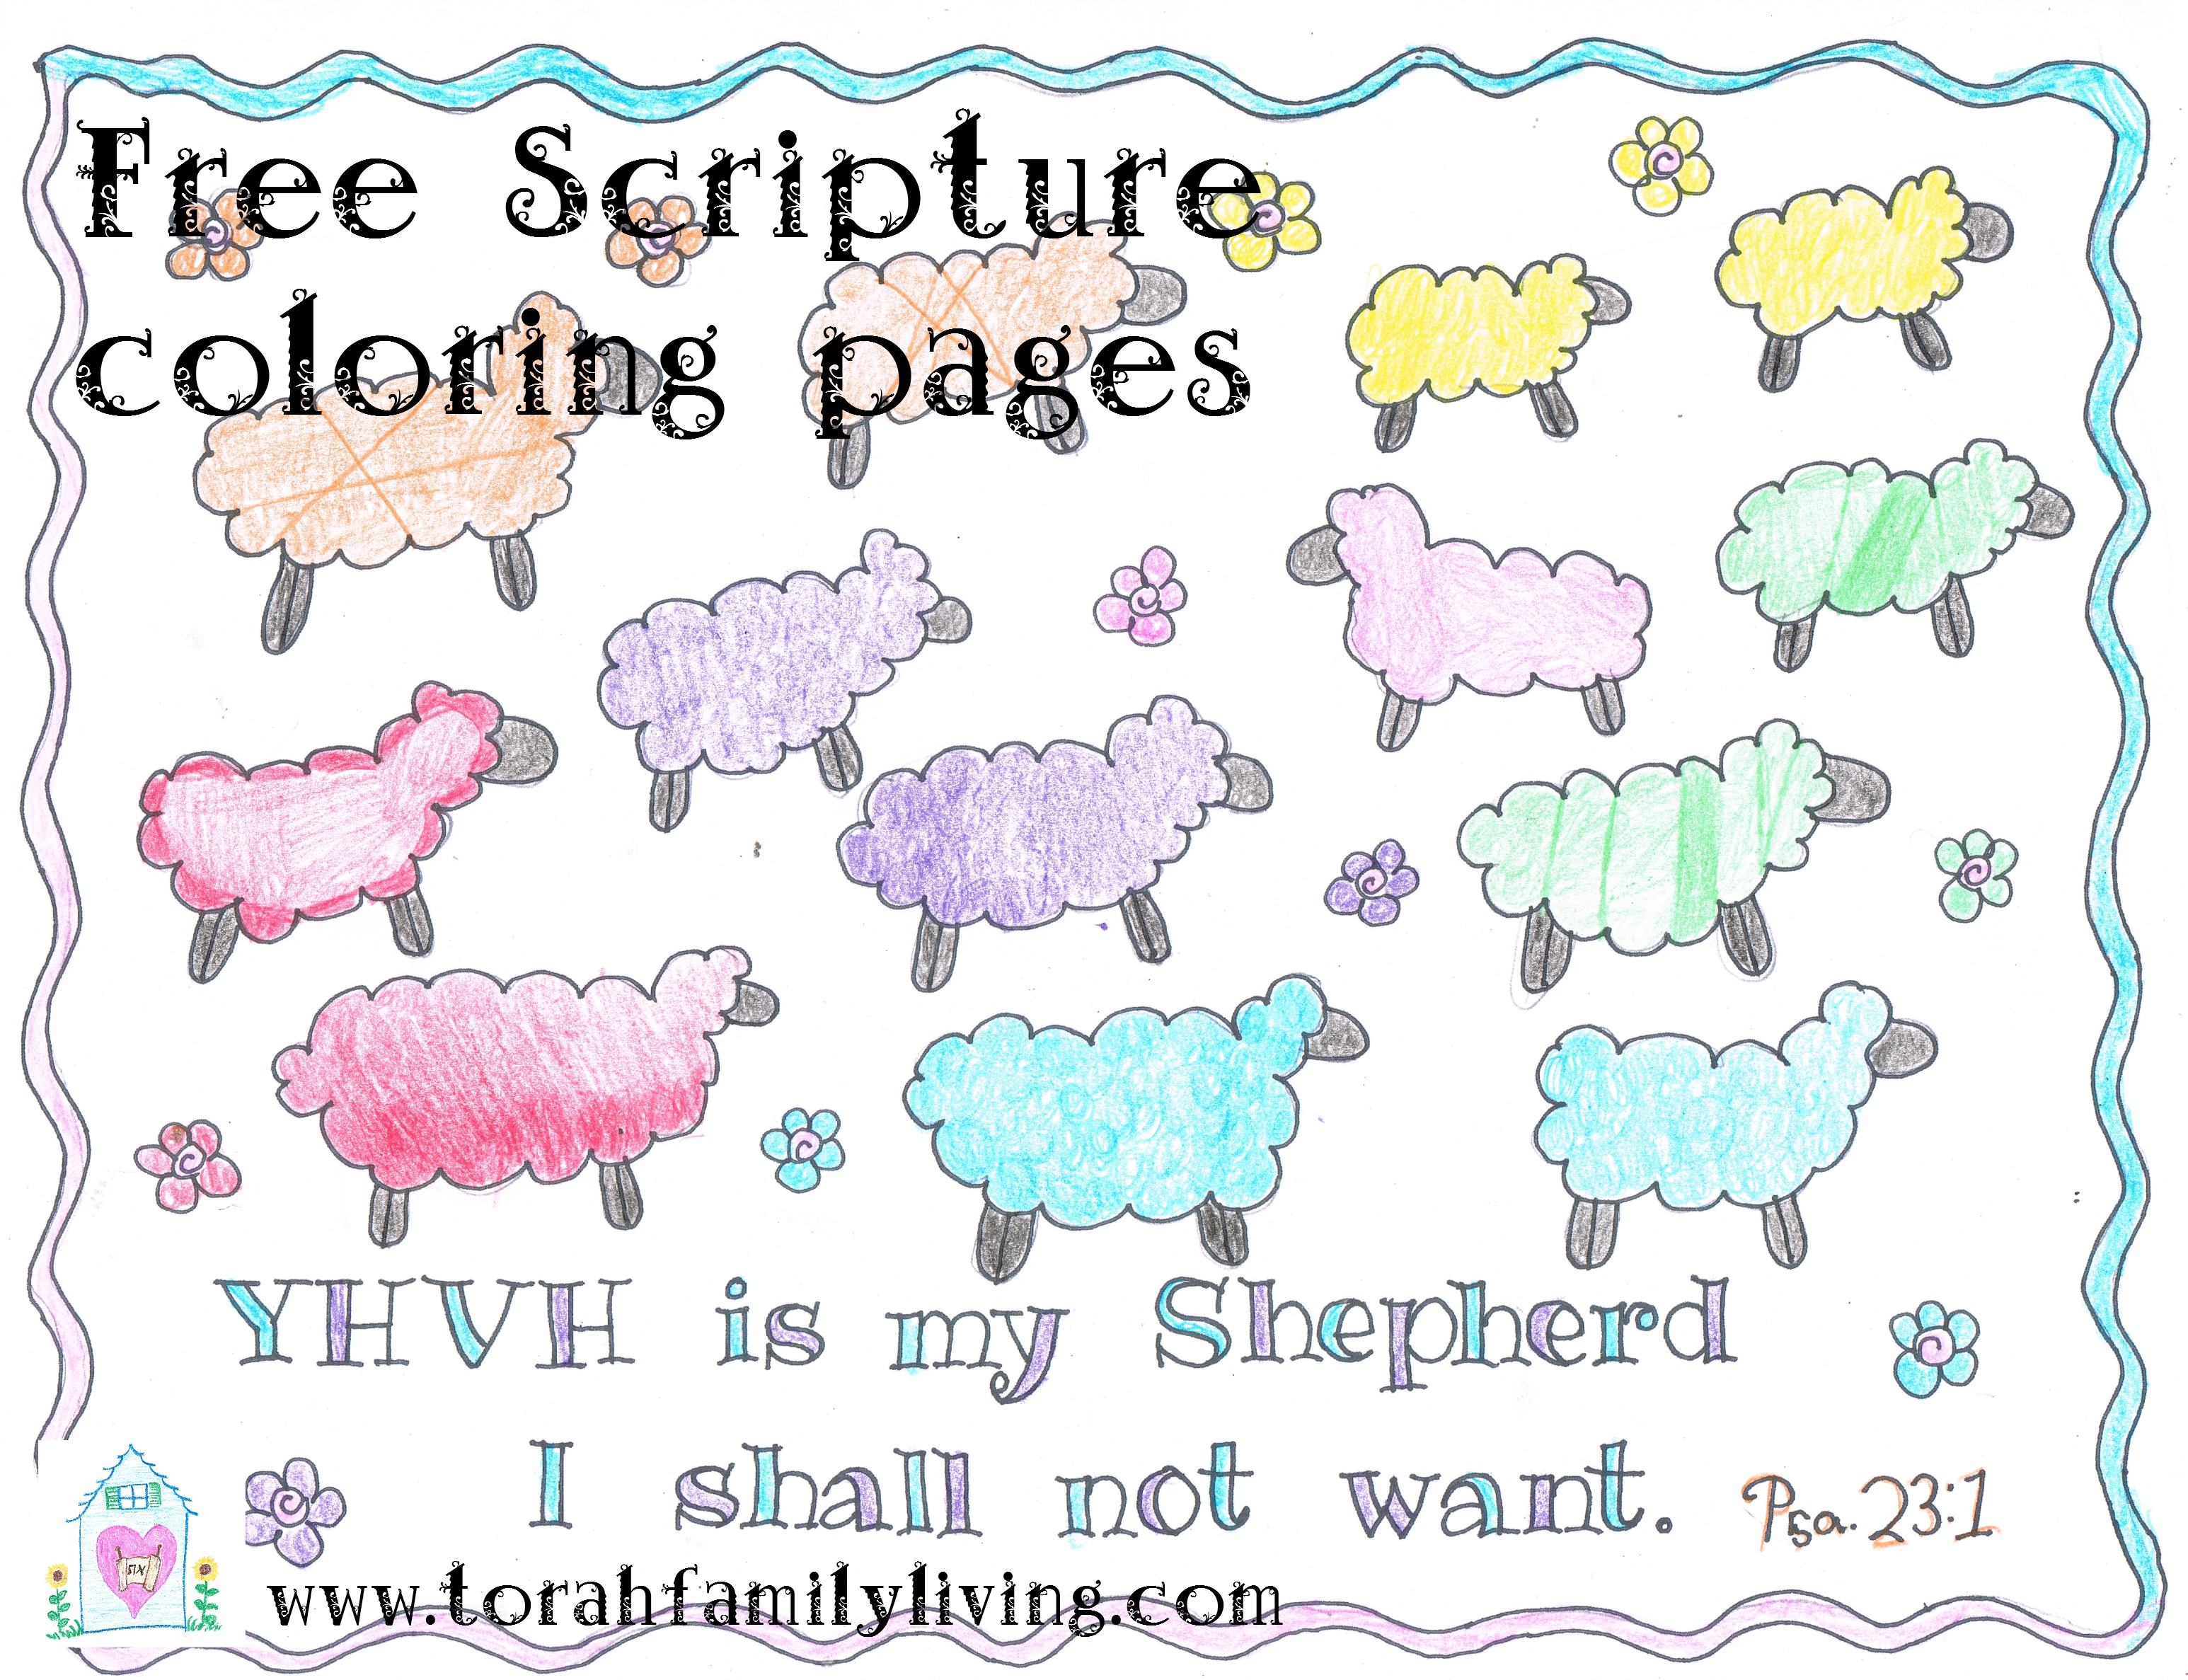 scripture coloring pages torah family living